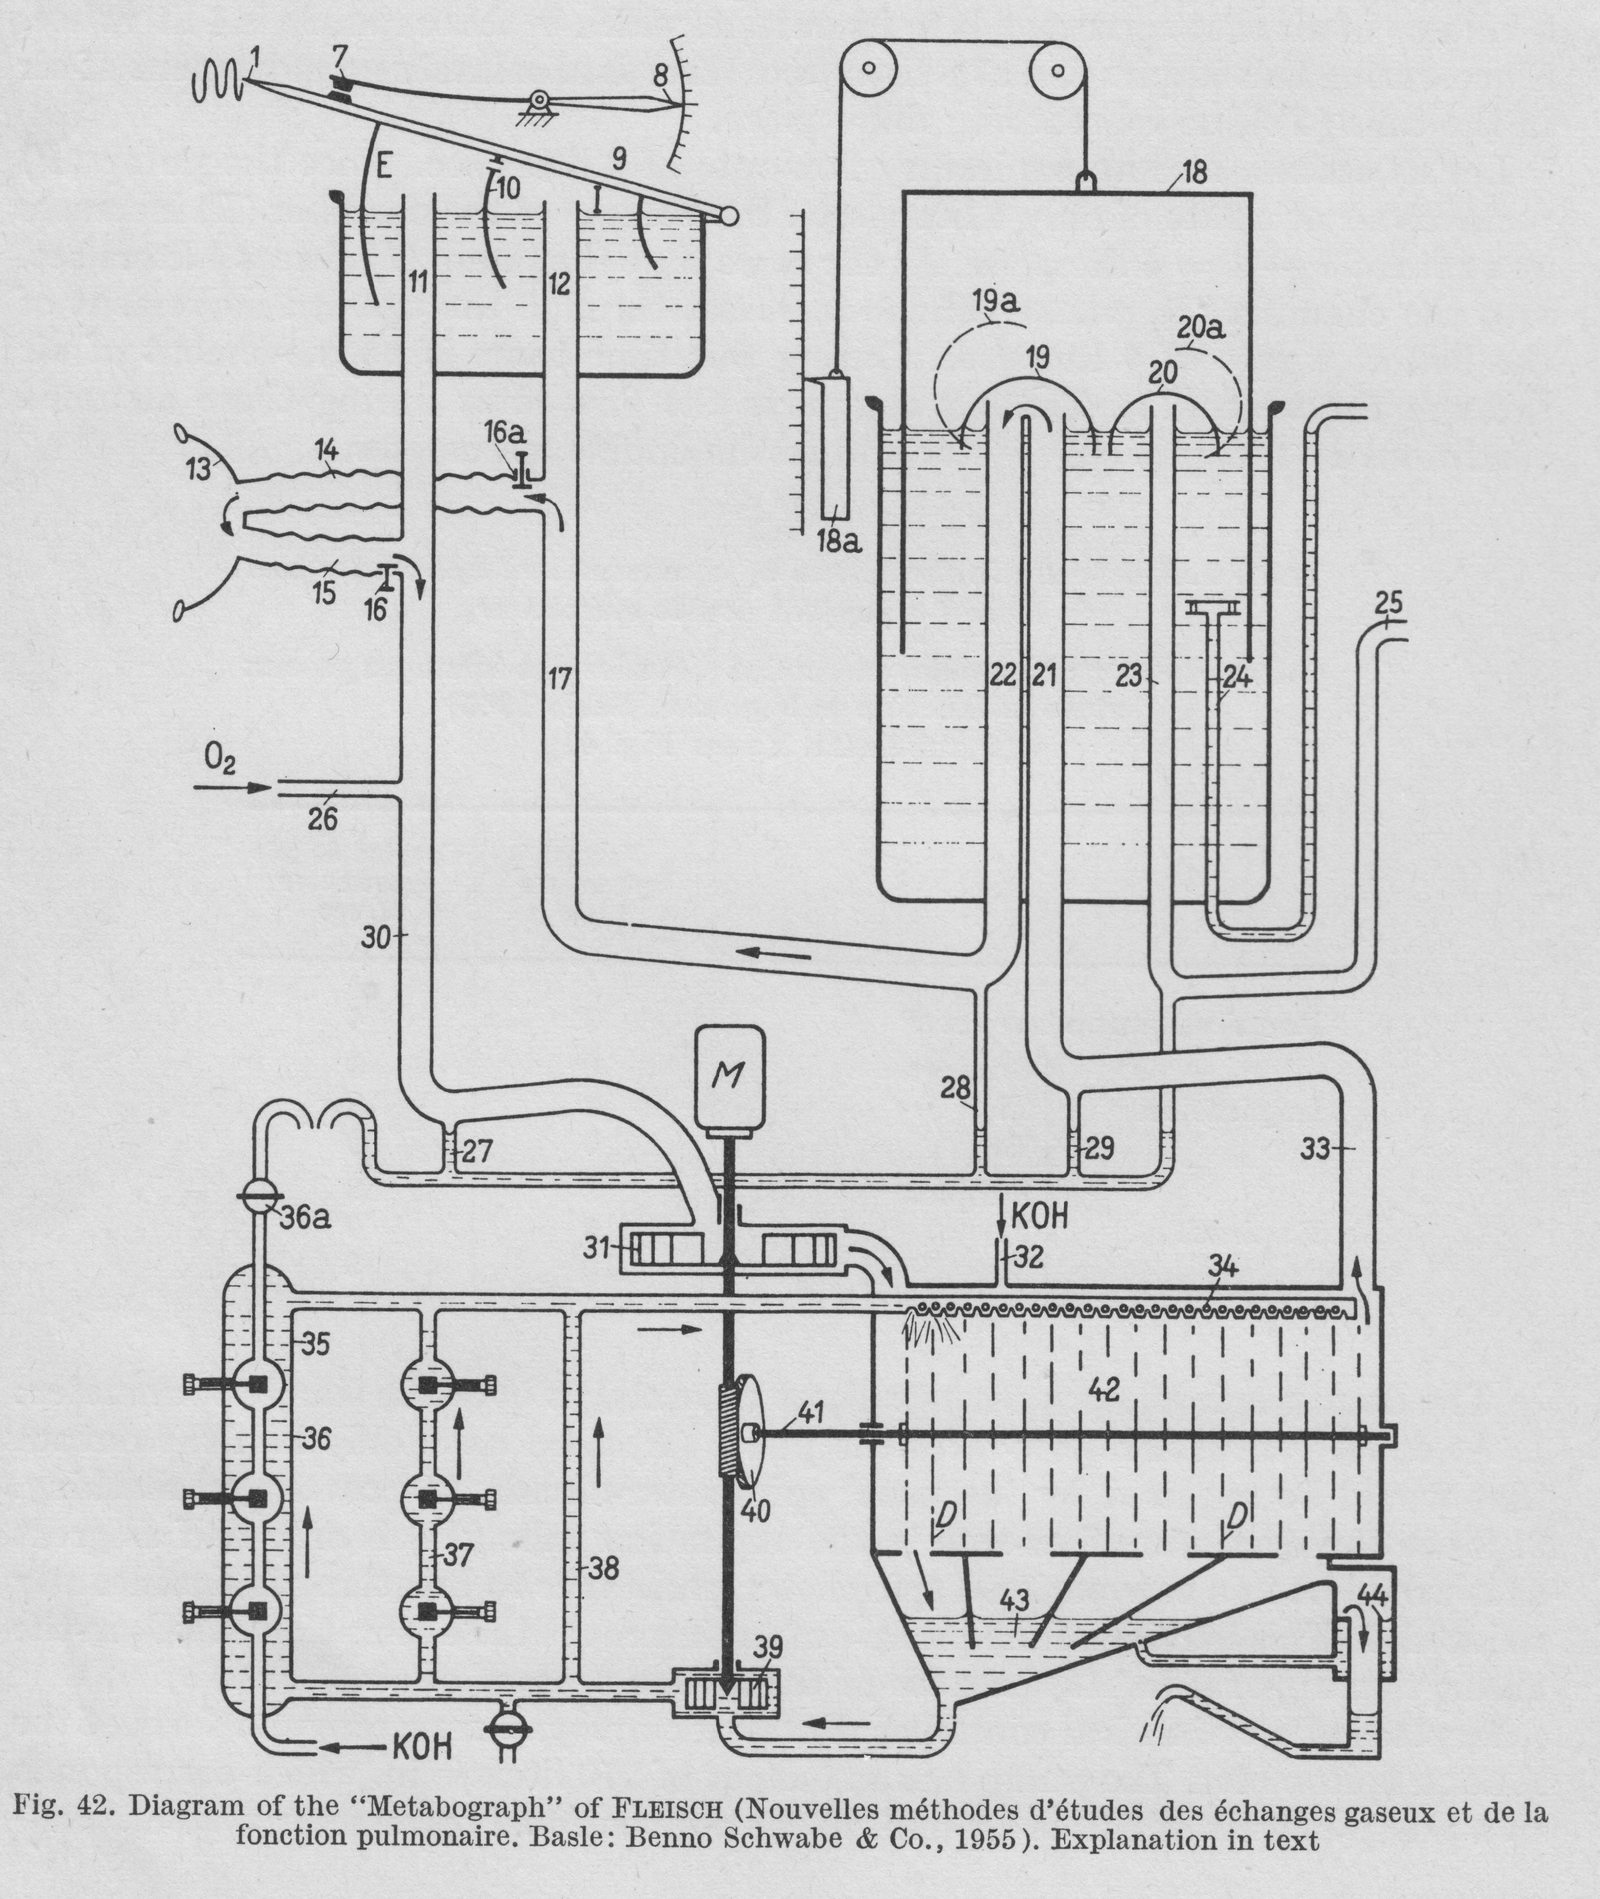 Co2 Production Pft History Metabo Wiring Diagram Fleisch Metabograph 1955